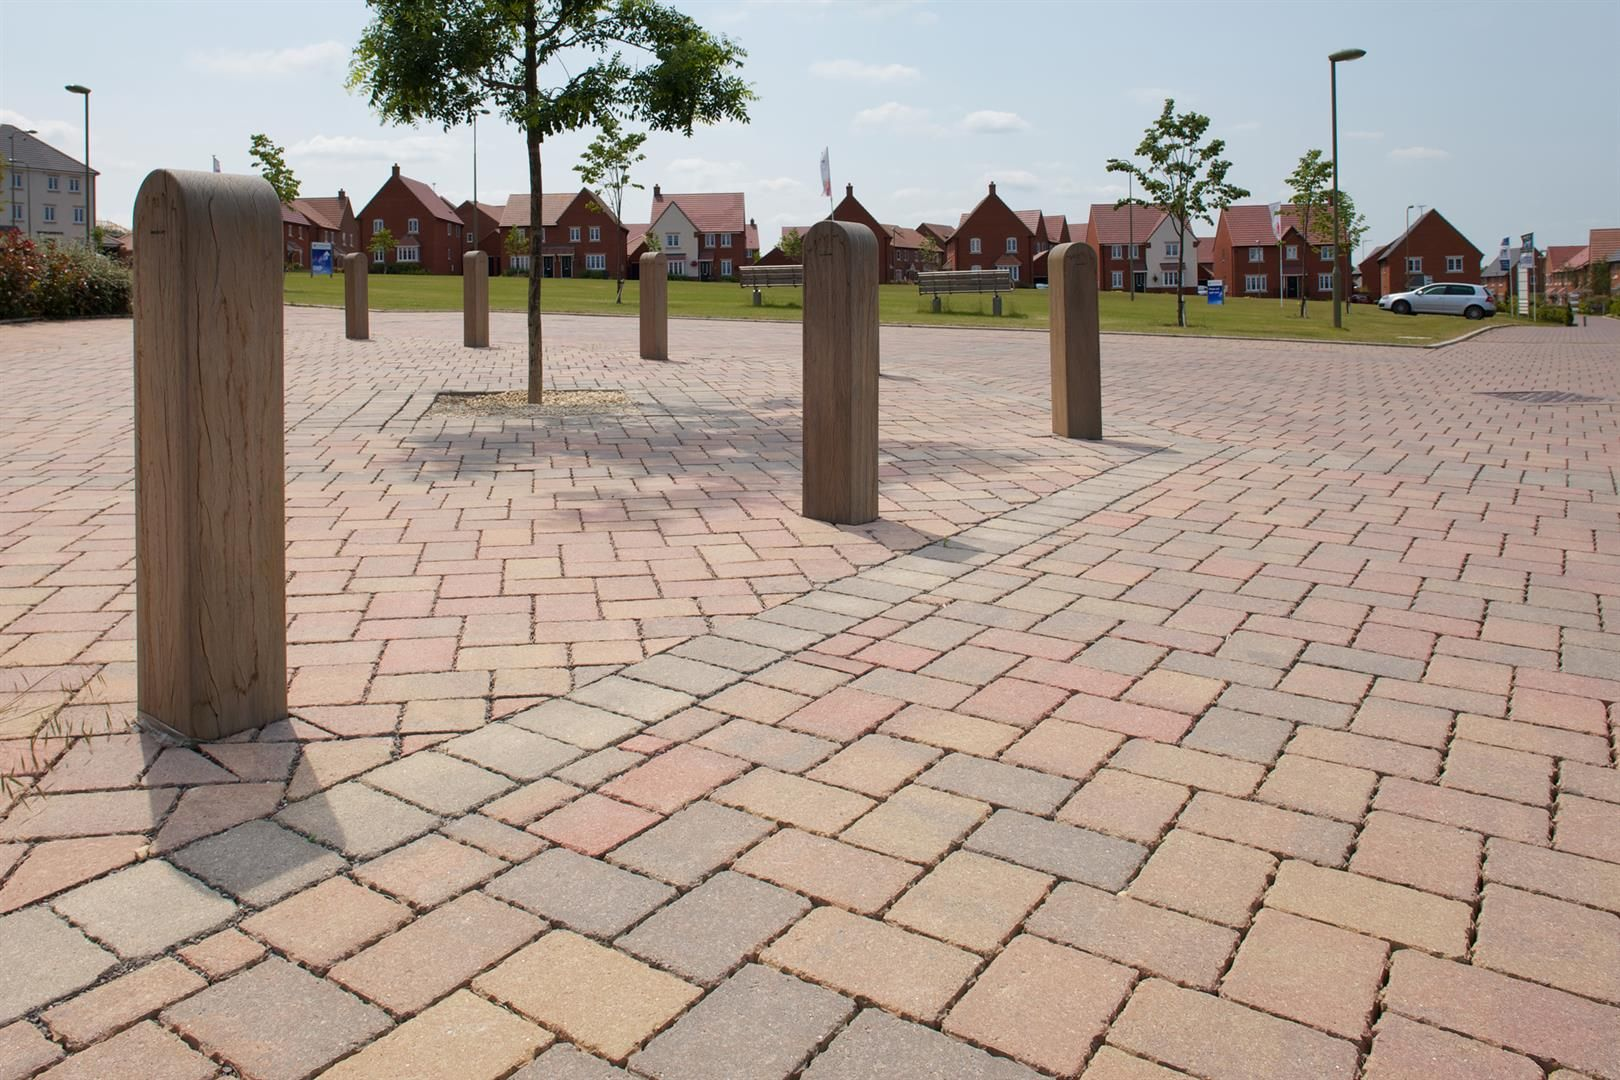 Wonderful Explore Block Paving, Concrete Blocks, And More!